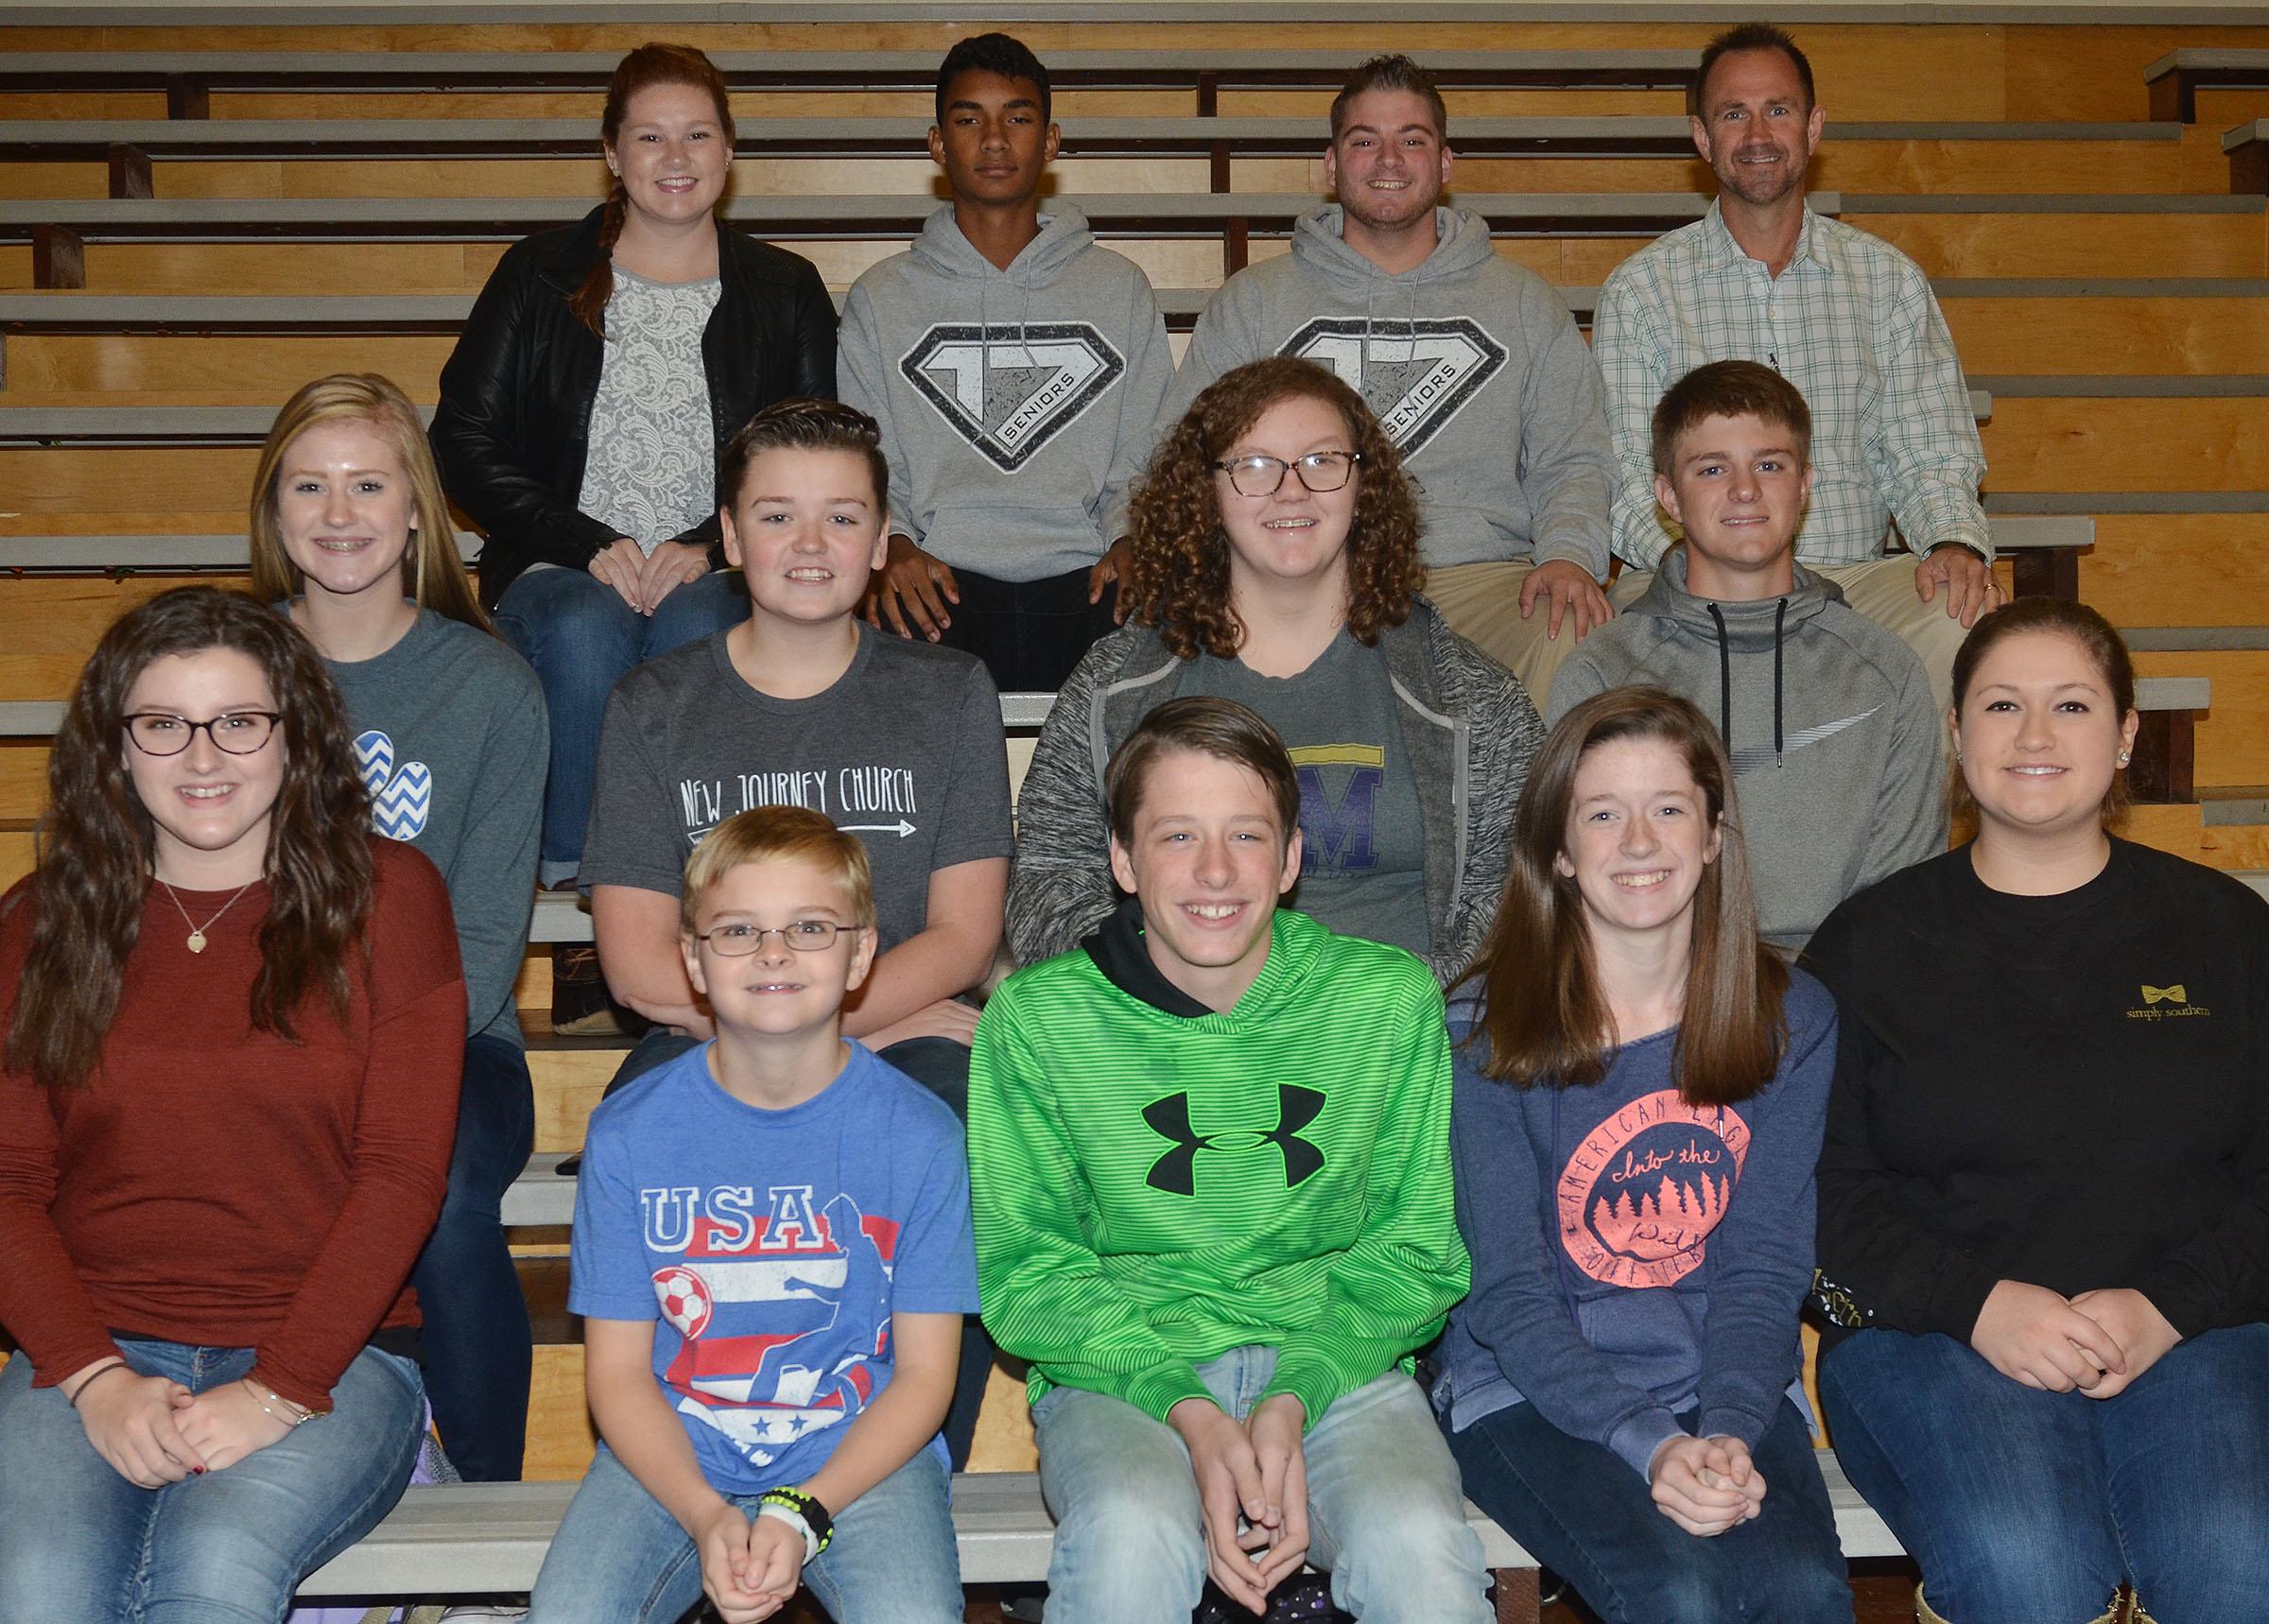 This year's CHS swim team includes, from left, front, freshman Alli Wilson, fifth-grader Caleb Holt, seventh-grader Seth Hash and freshman Gracyne Hash and Aleah Knifley. Second row, freshmen Isabella Osborne, Gavin Johnson and Emily Rodgers and junior Alex Doss. Back, seniors Mallory Haley, Daniel Silva and Jon Tanner Coppage and coach Steve Doss. Absent from the photo are sophomore Brandon Greer, junior Bryce Richardson, freshman Bailey Smith and fifth-grader Dalton Morris.